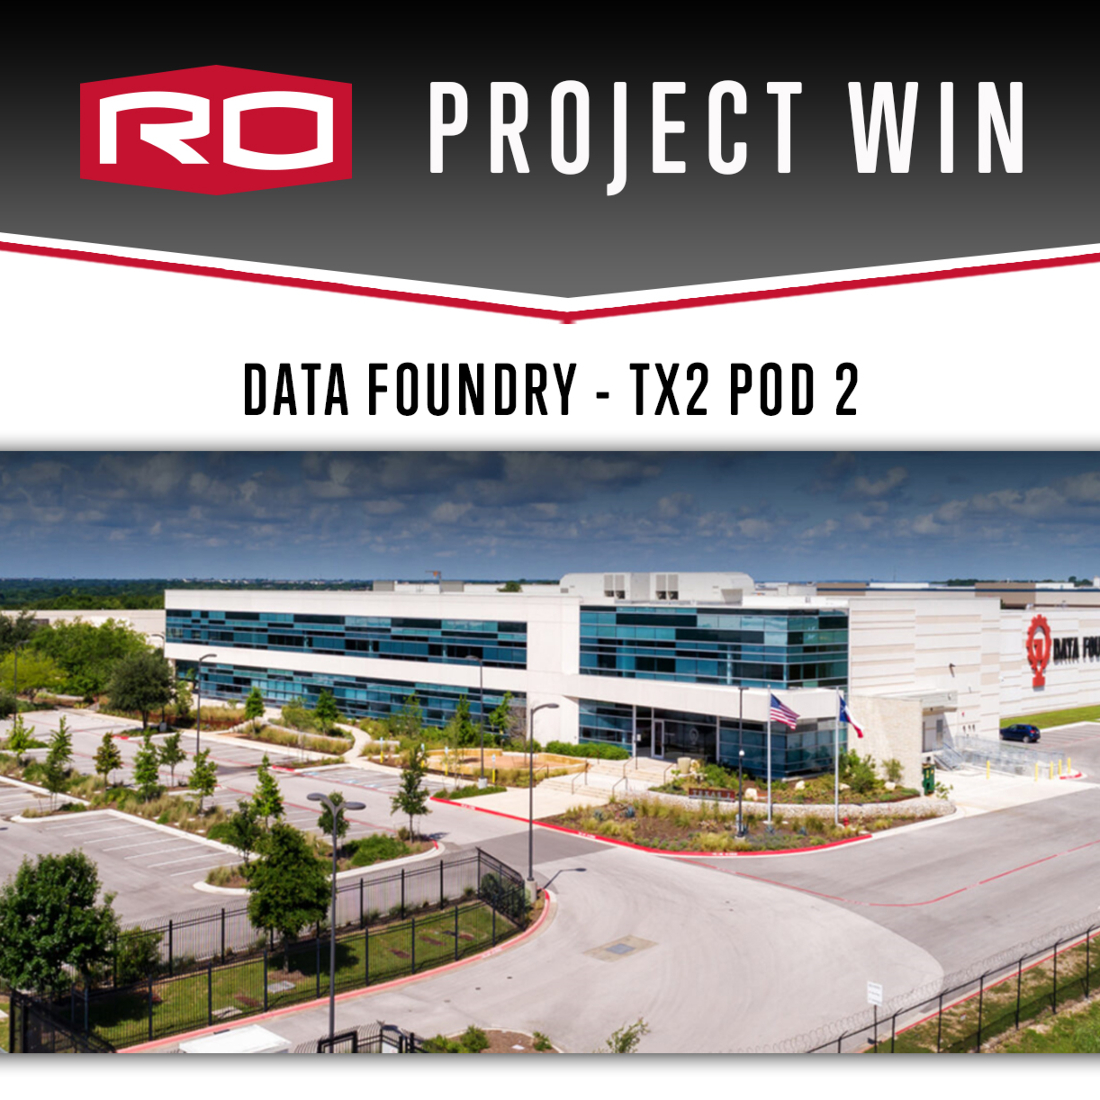 PROJECT WIN: DATA FOUNDRY- TX2 POD 2